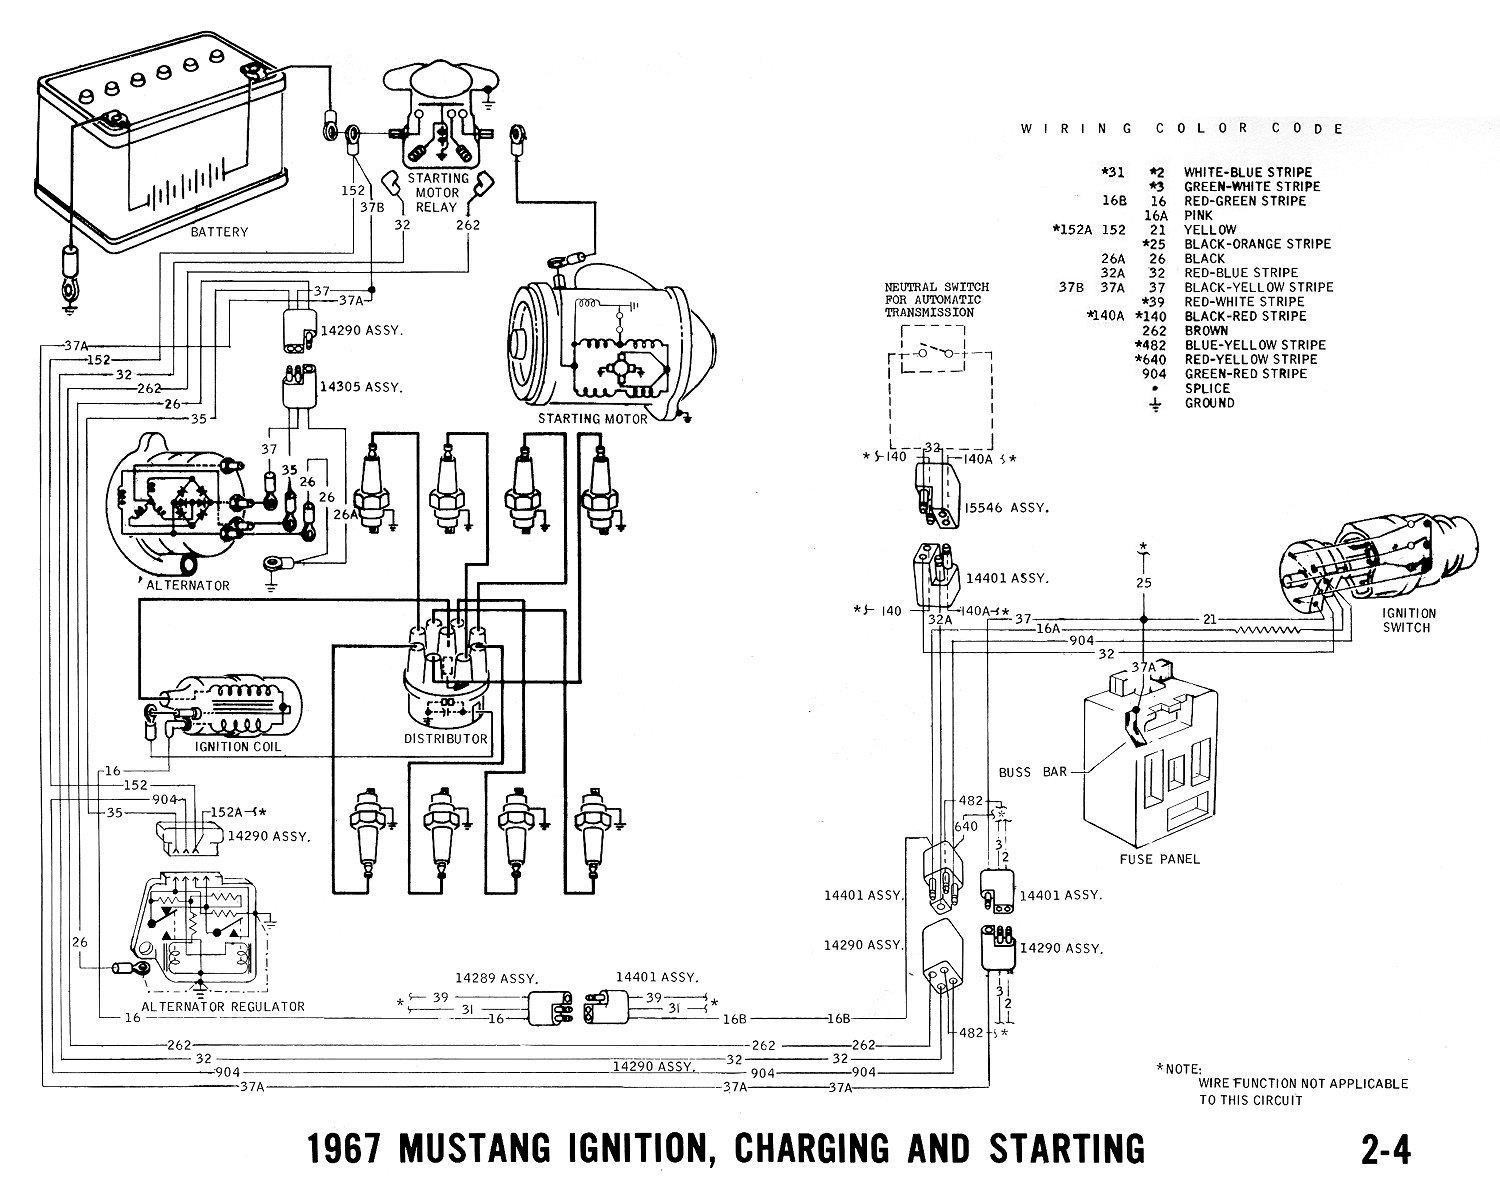 1968 Ford Mustang Wiring Harness Schematic Trusted Diagram Ignition 1985 Gt 68 Rh Masinisa Co 1965